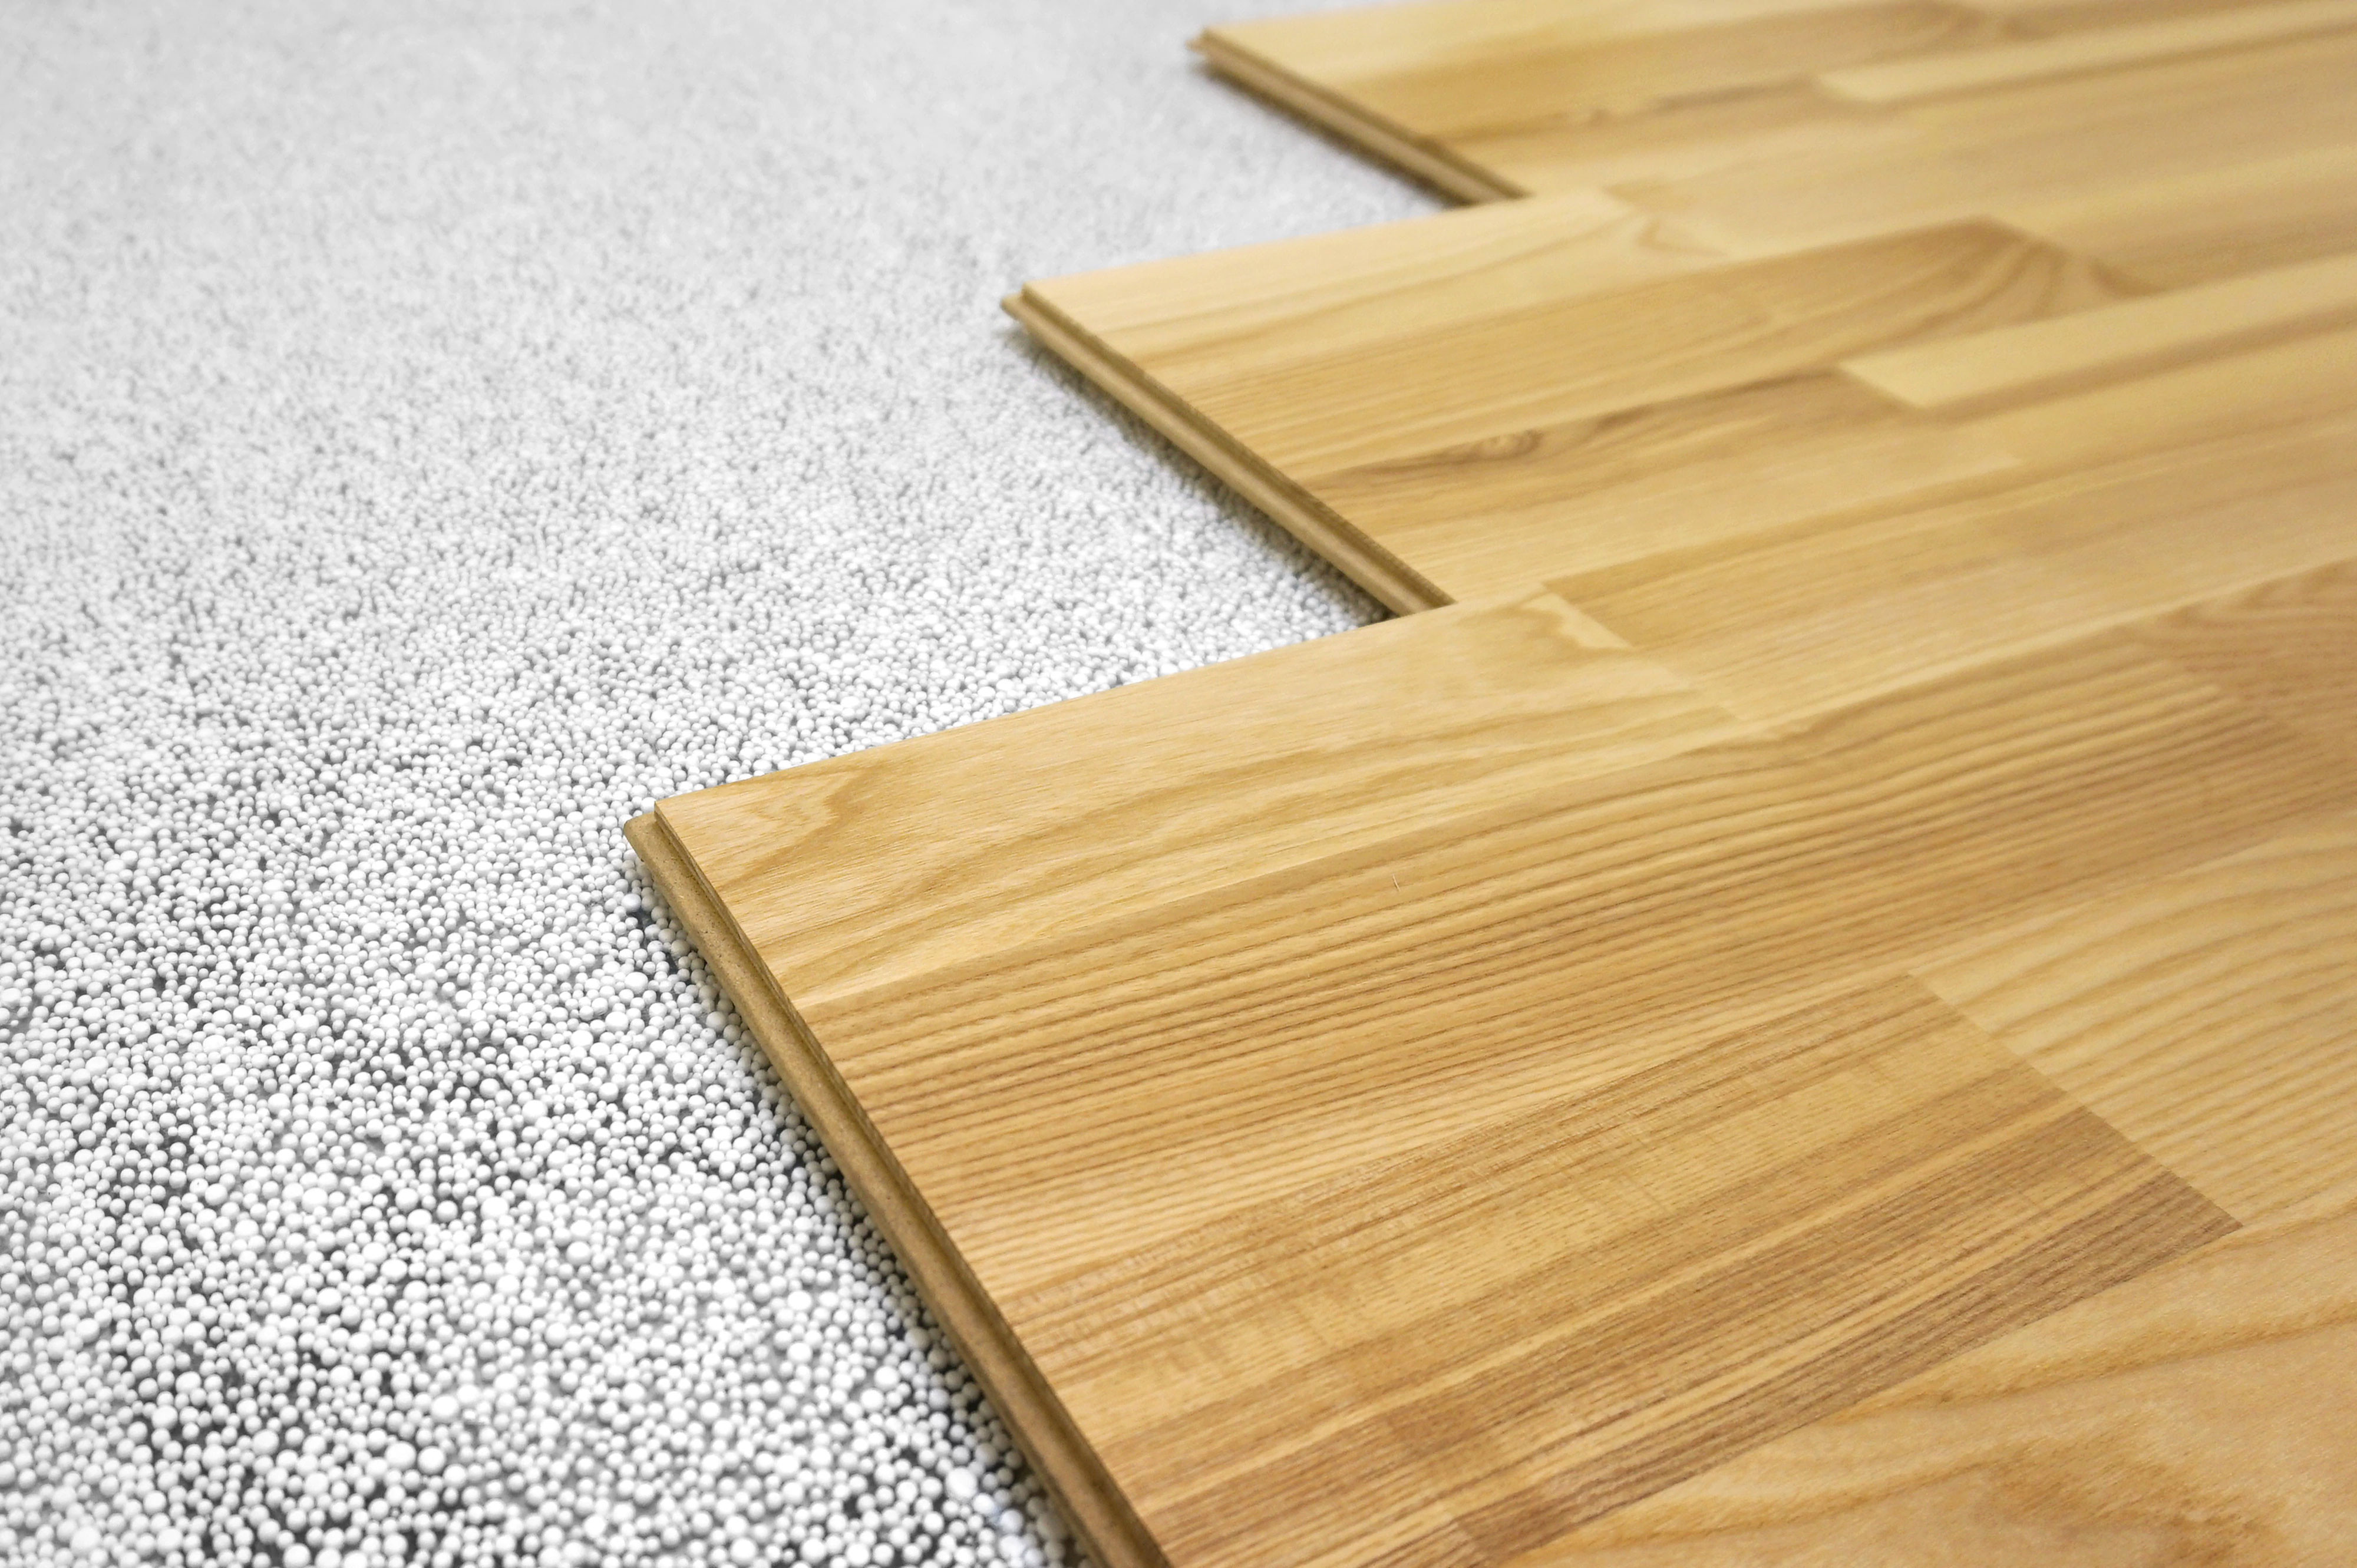 redoing hardwood floors old house of what does it cost to install laminate flooring angies list with wood lam